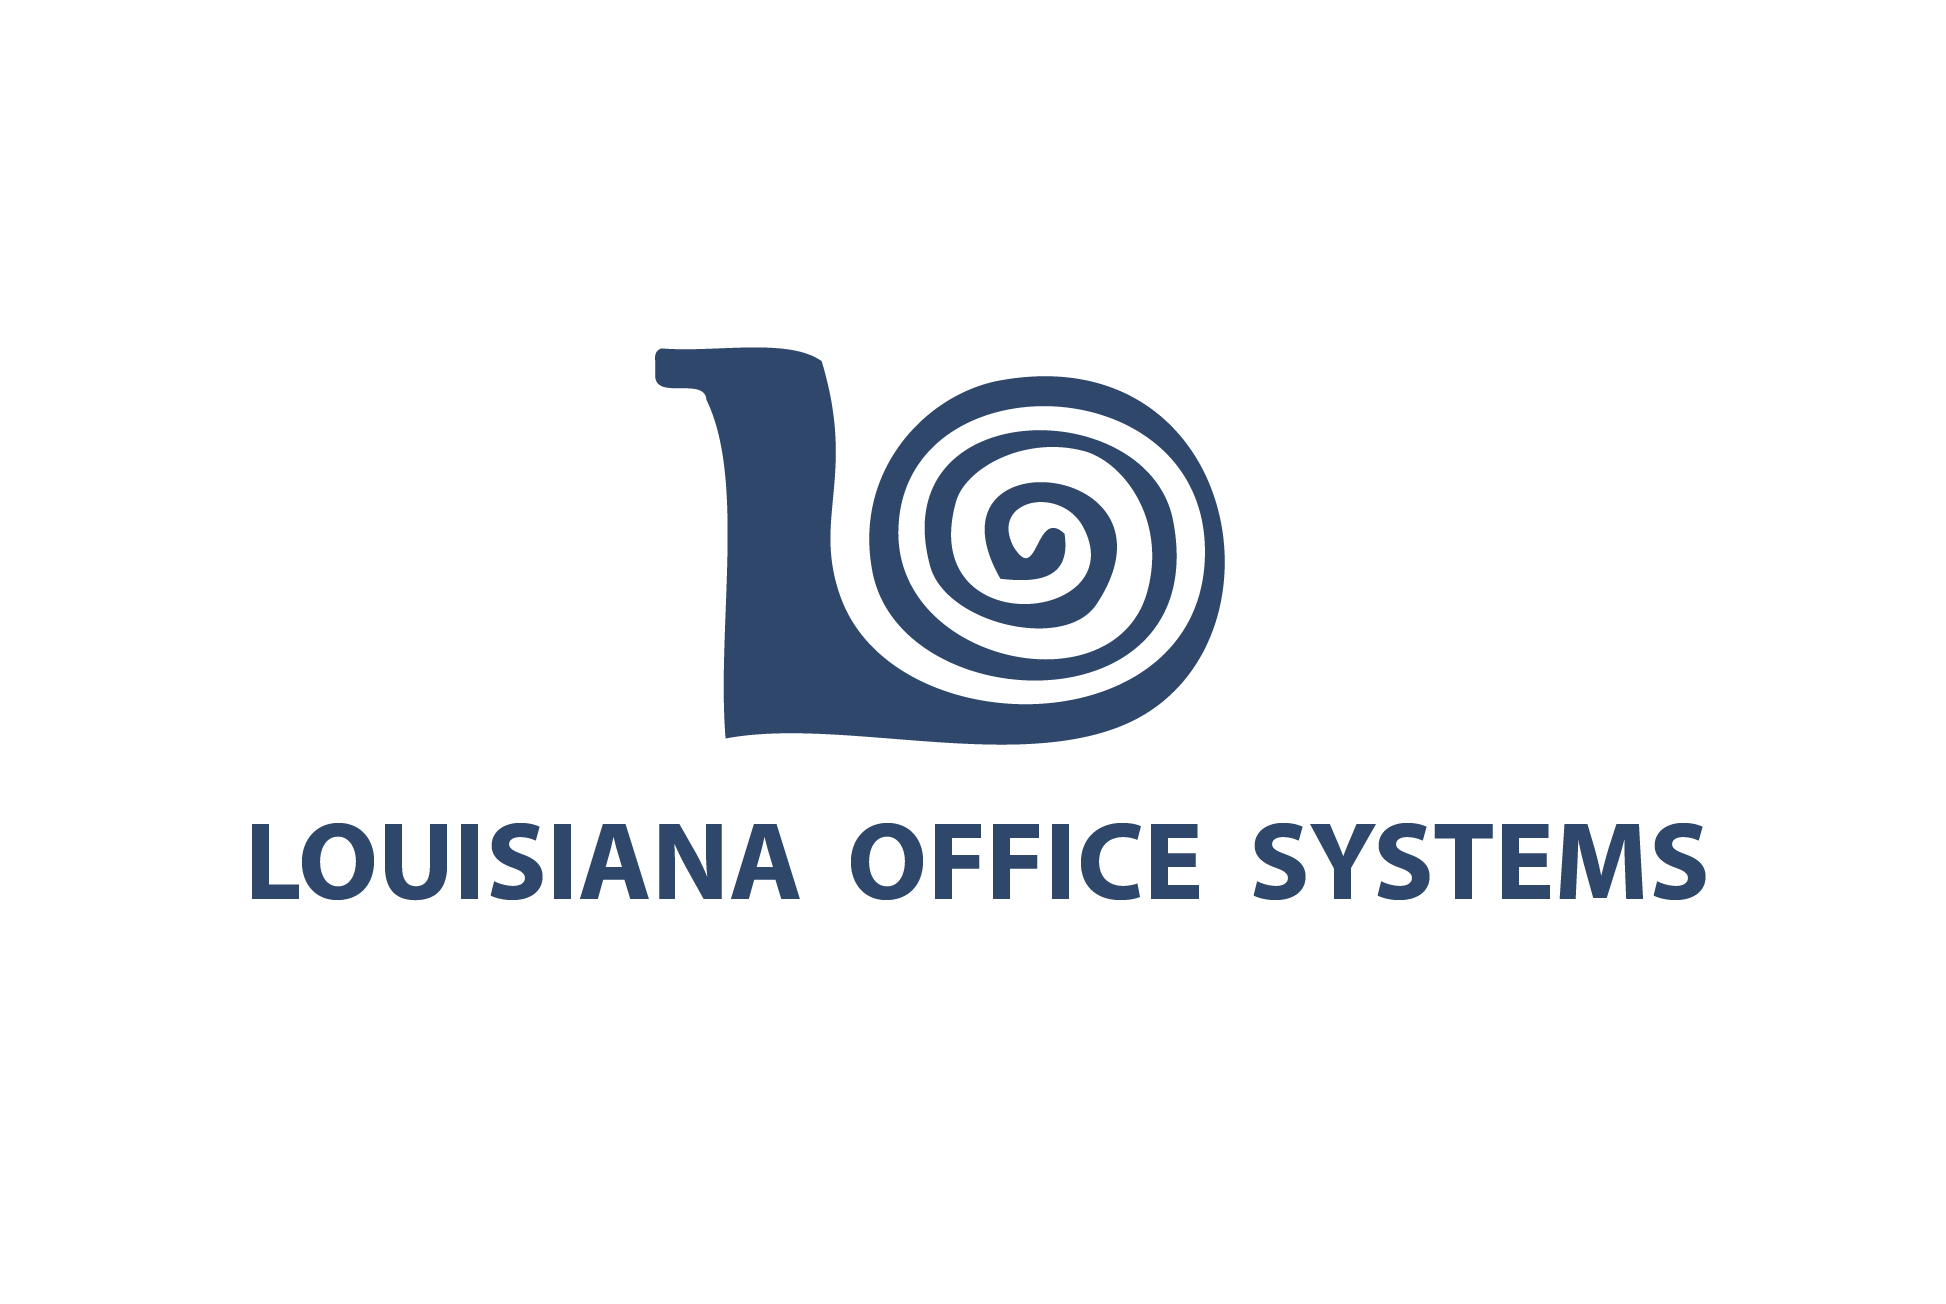 LA_OfficeSystems-01.png